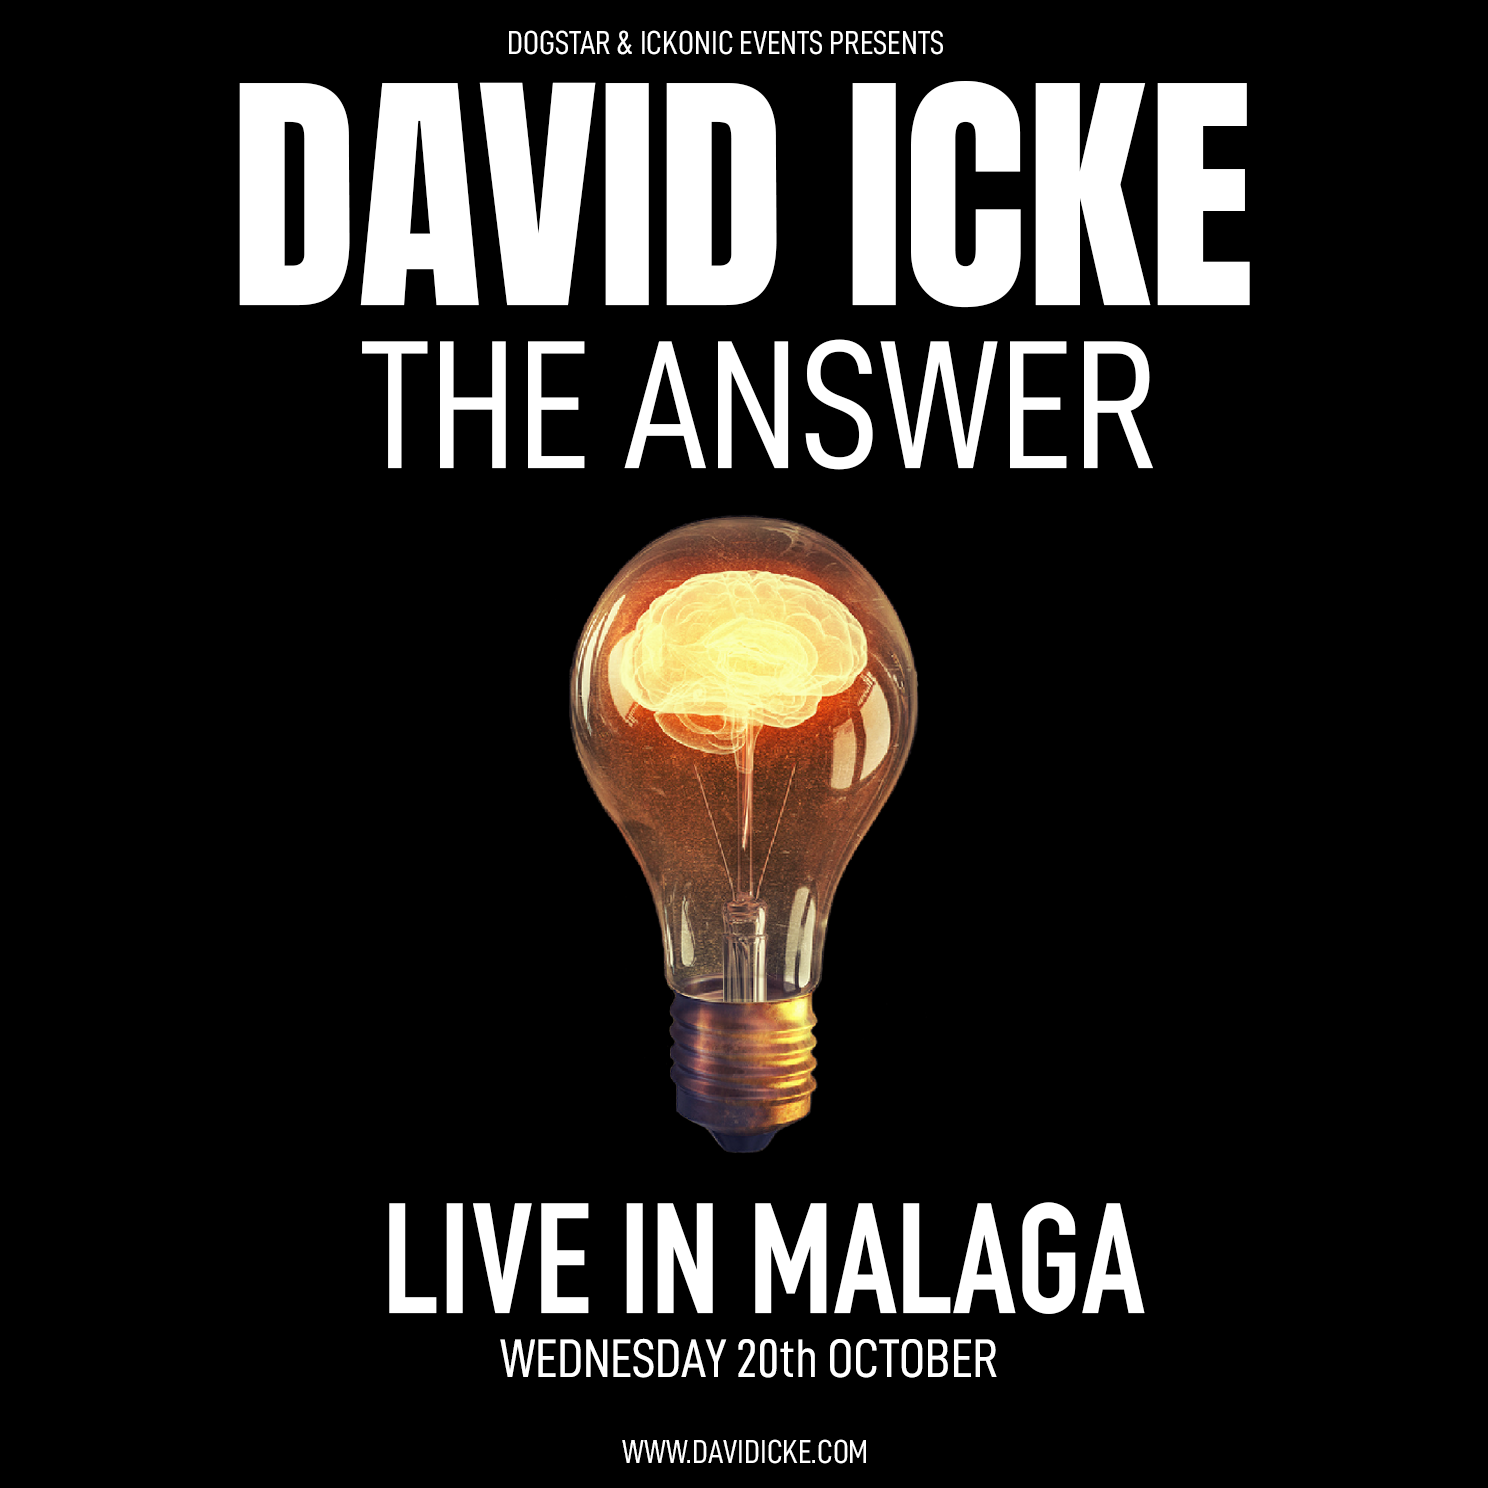 David Icke - Live In Malaga - The Answer - Wednesday 20th October